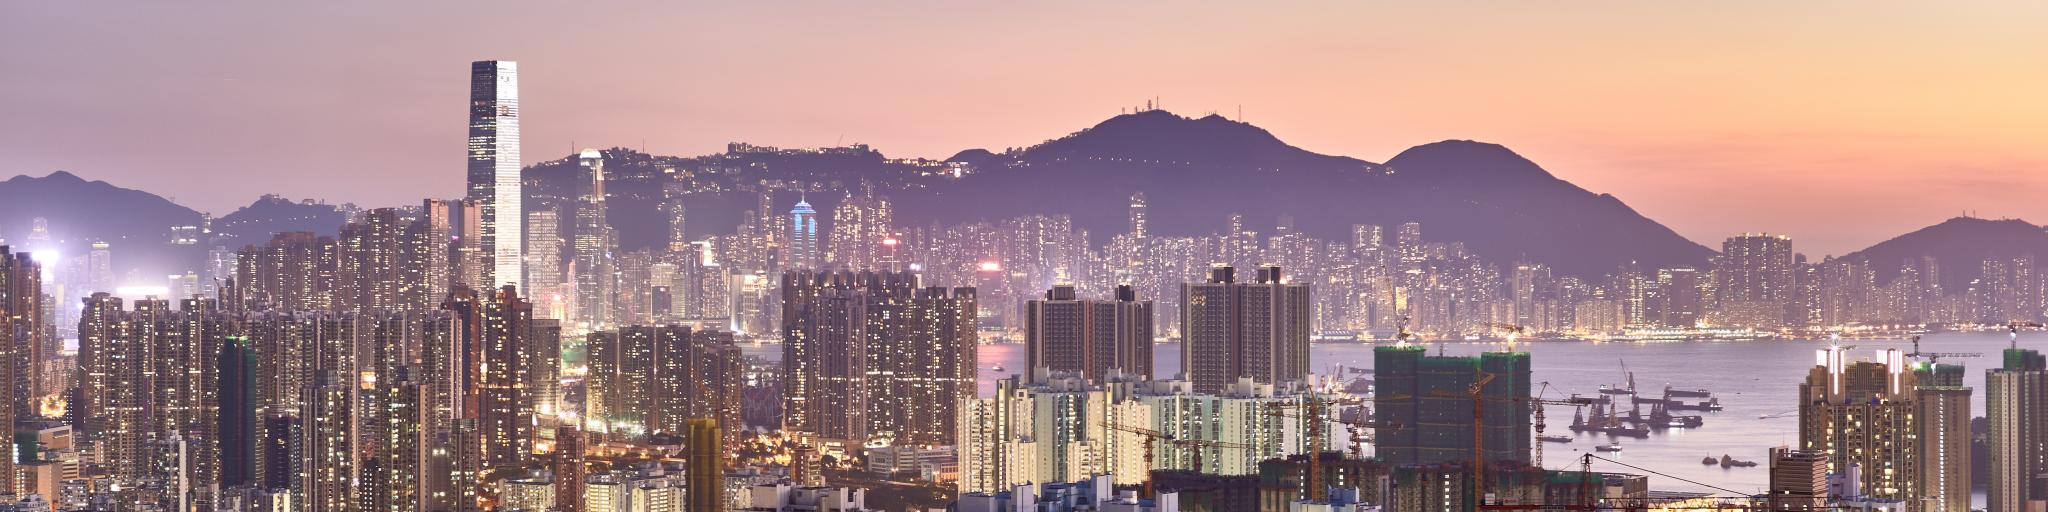 The Hong Kong skyline lit up amid a pink sunset with the harbour in the middle and mountains in the background